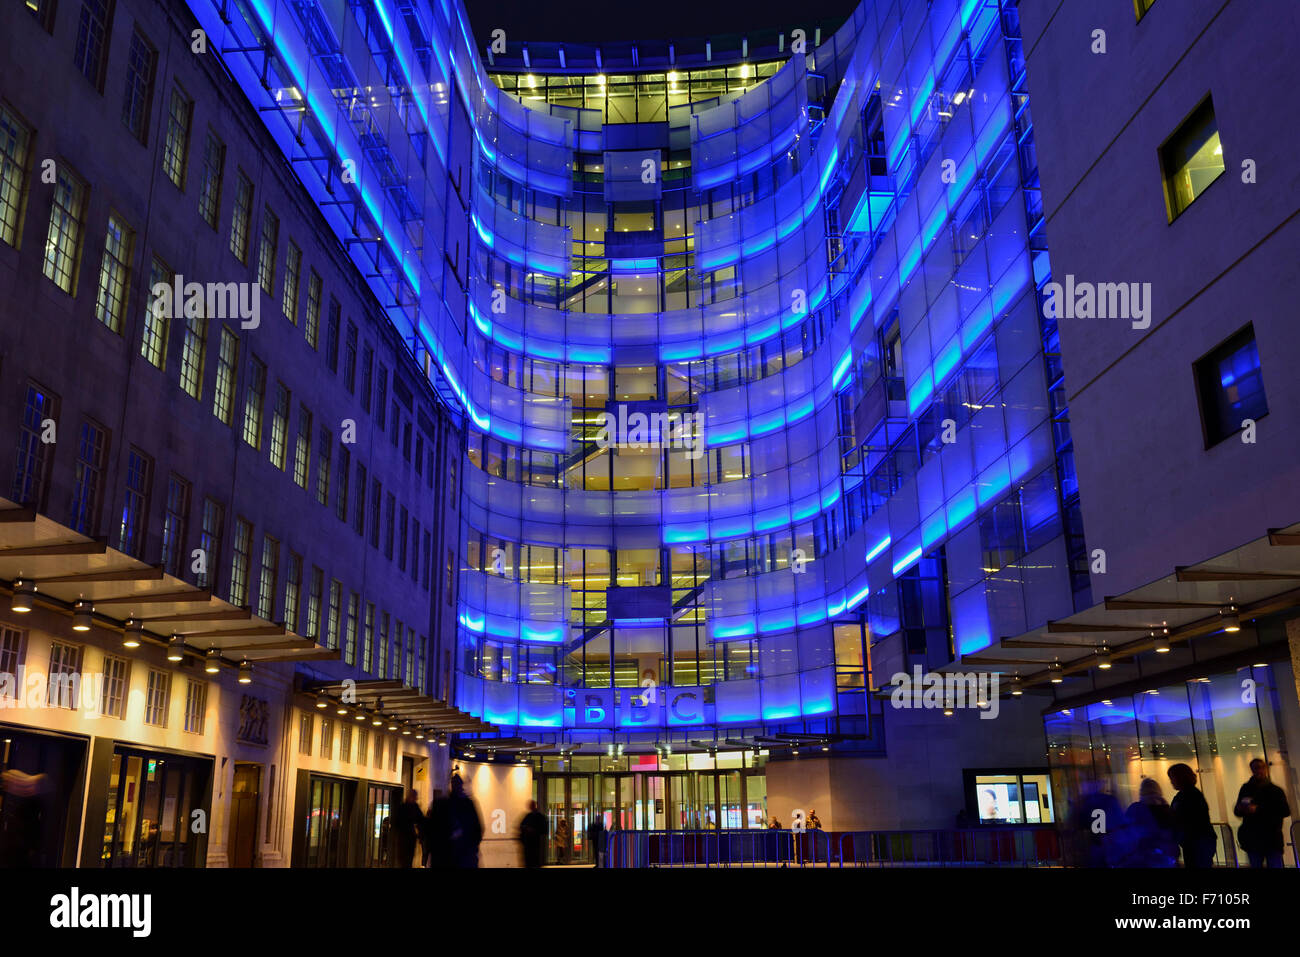 BBC Broadcasting House connecting wing, Portland Place, London W1A, United Kingdom - Stock Image